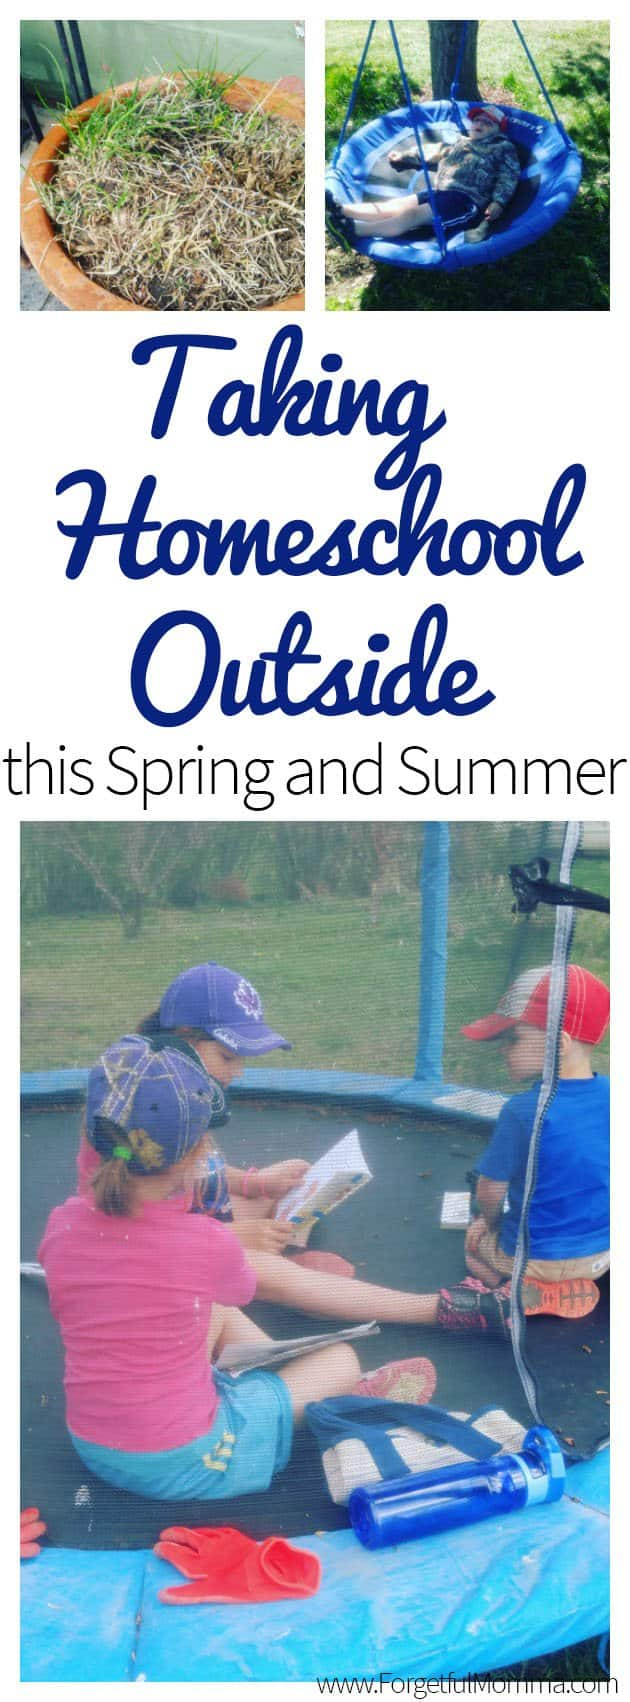 Taking Homeschool Outside this Spring and Summer